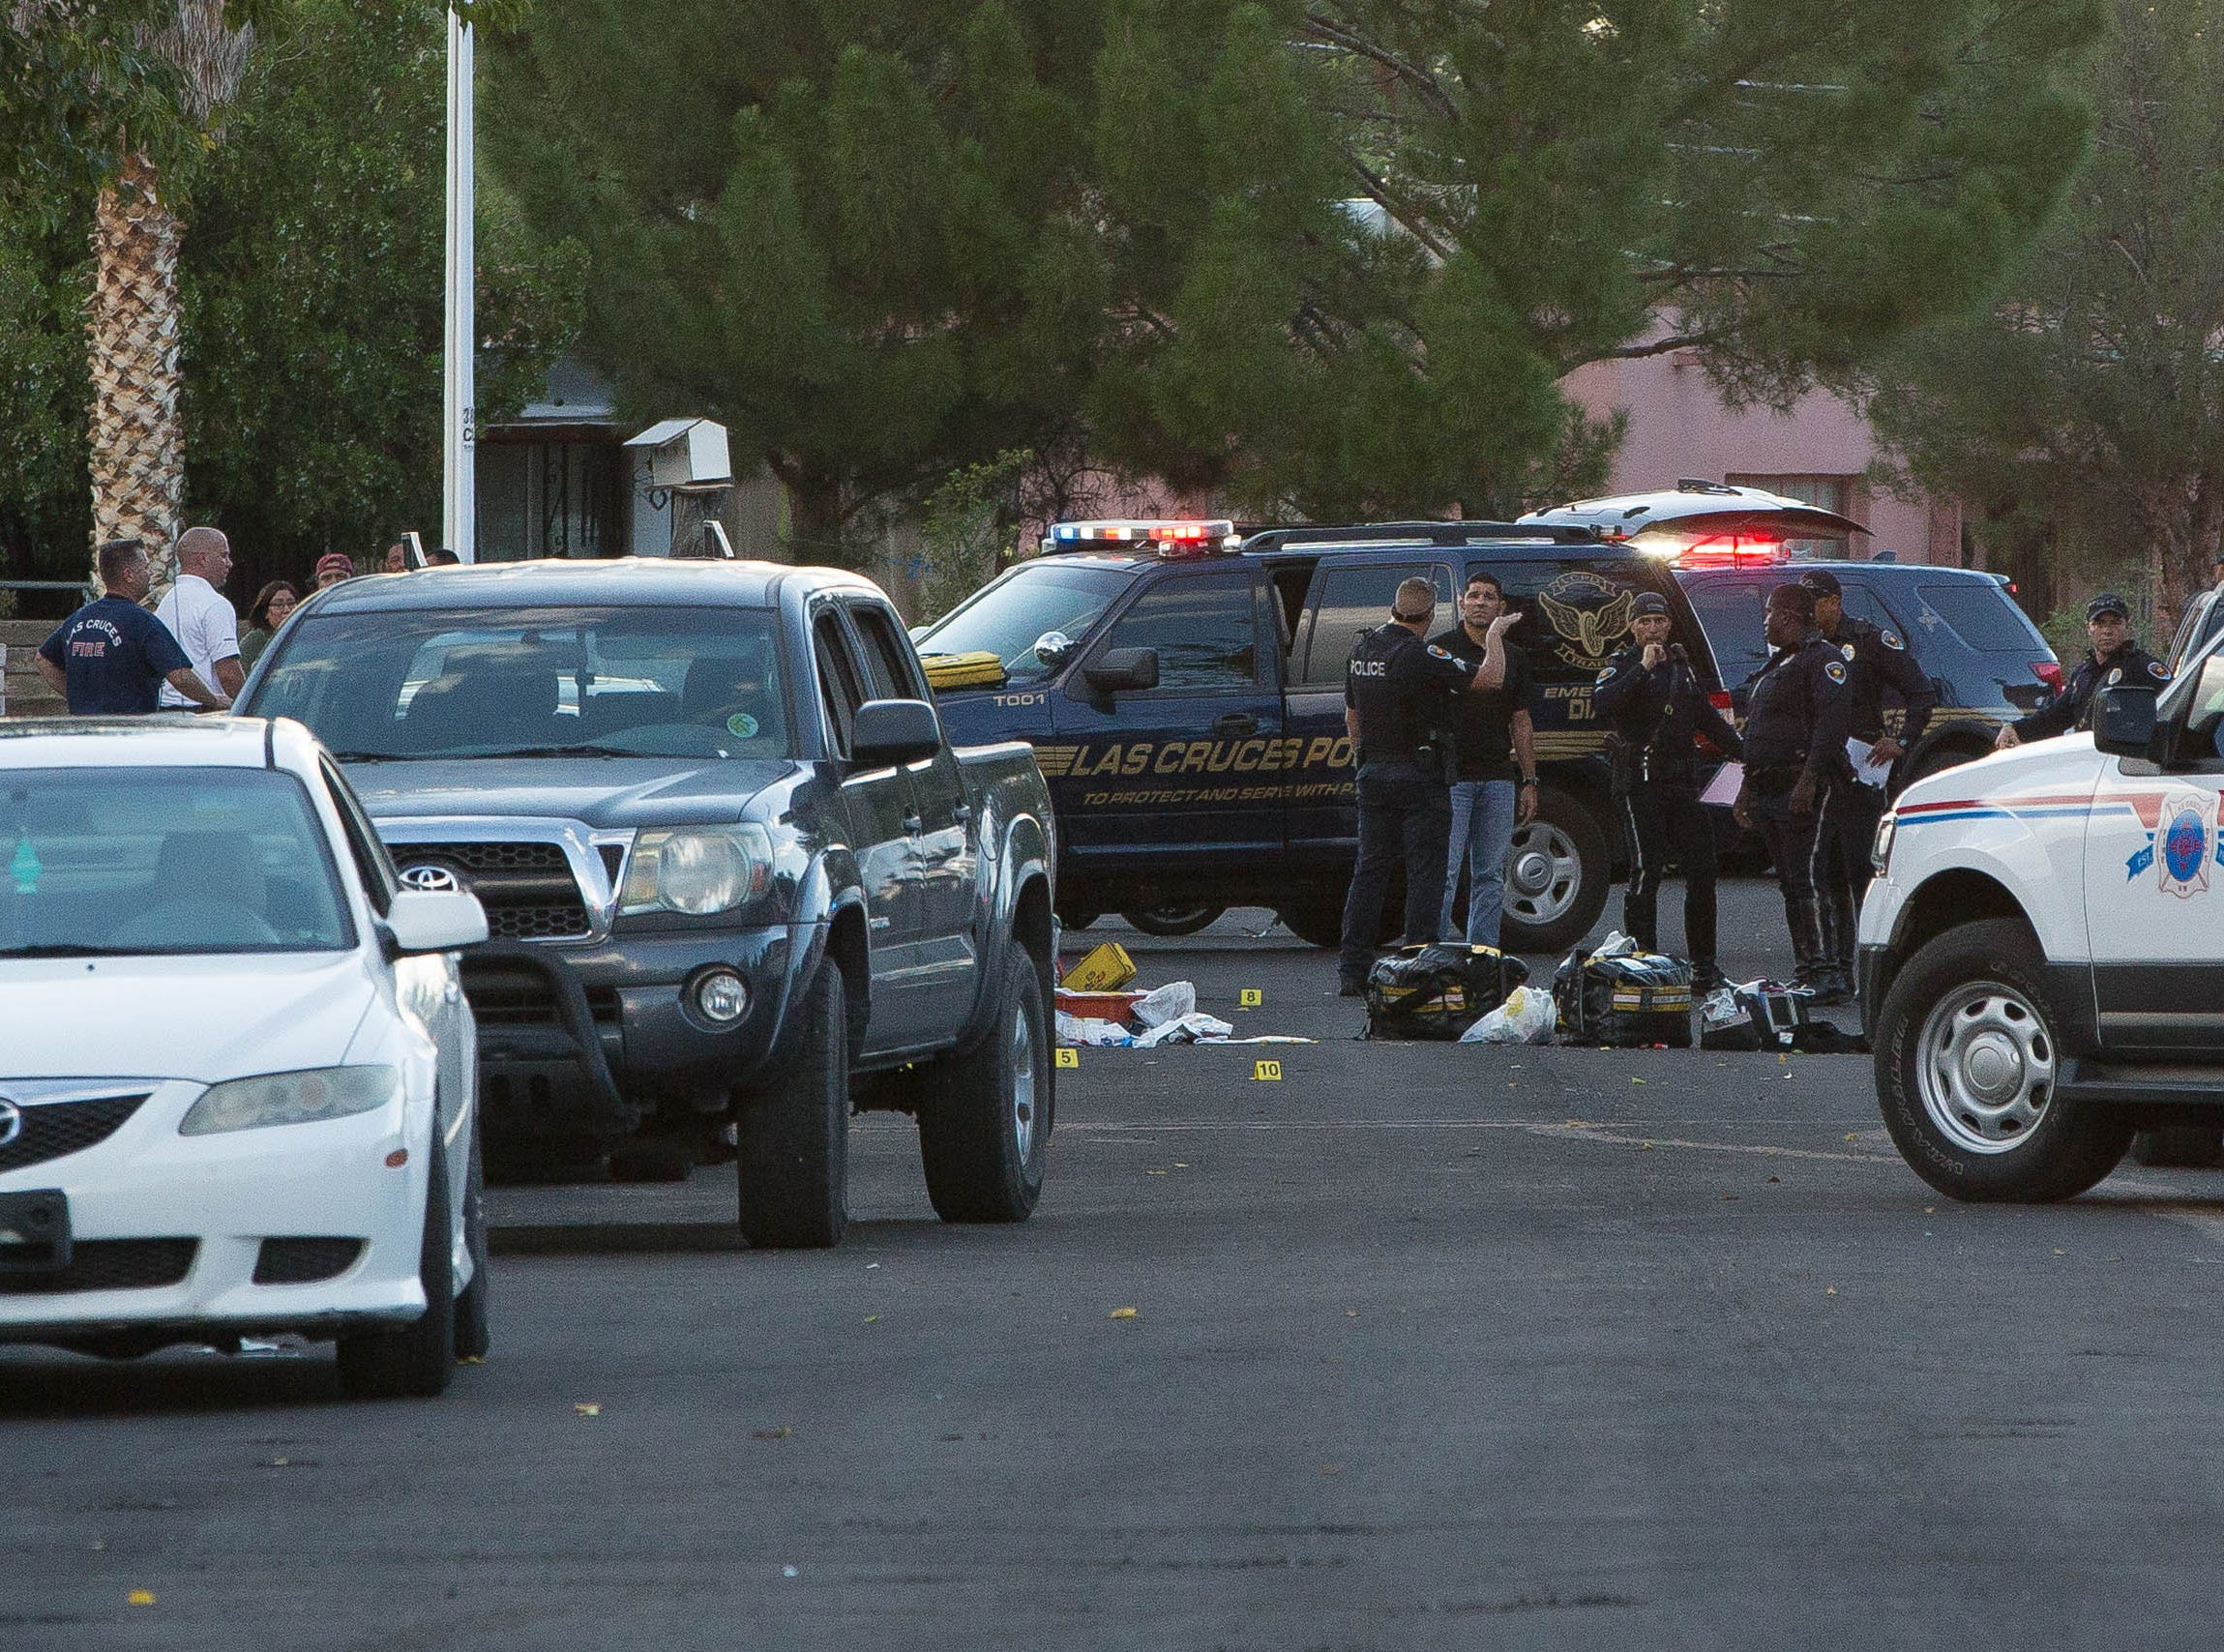 Las Cruces police officers investigate a scene where a 6-year-old boy was hit by a vehicle at the intersection of Oxford Drive and Cambridge Drive on Friday, Sept. 21, 2018.